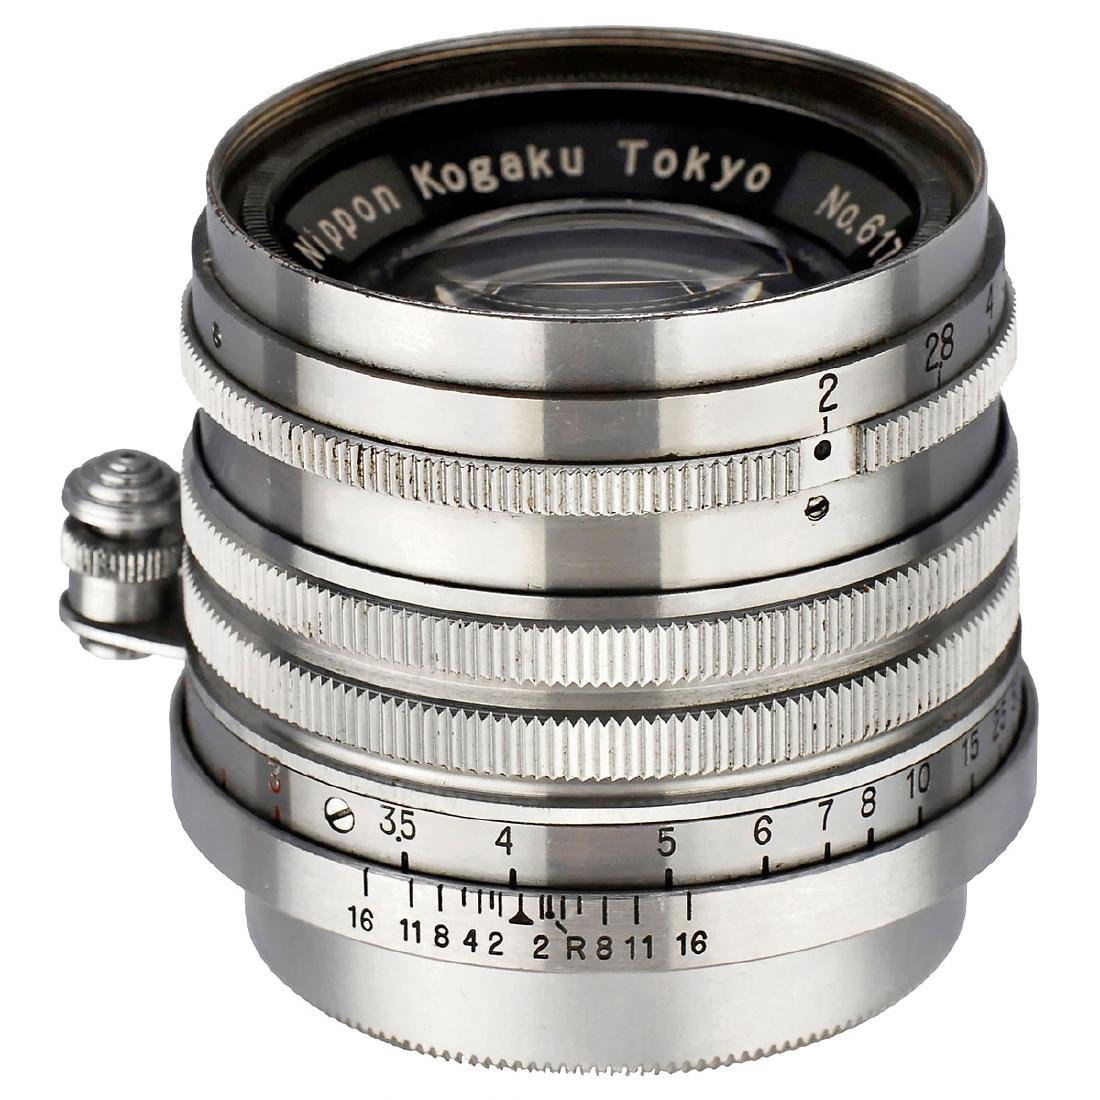 Nikkor-H.C 2/5 cm Screw-Mount Leica, 1953